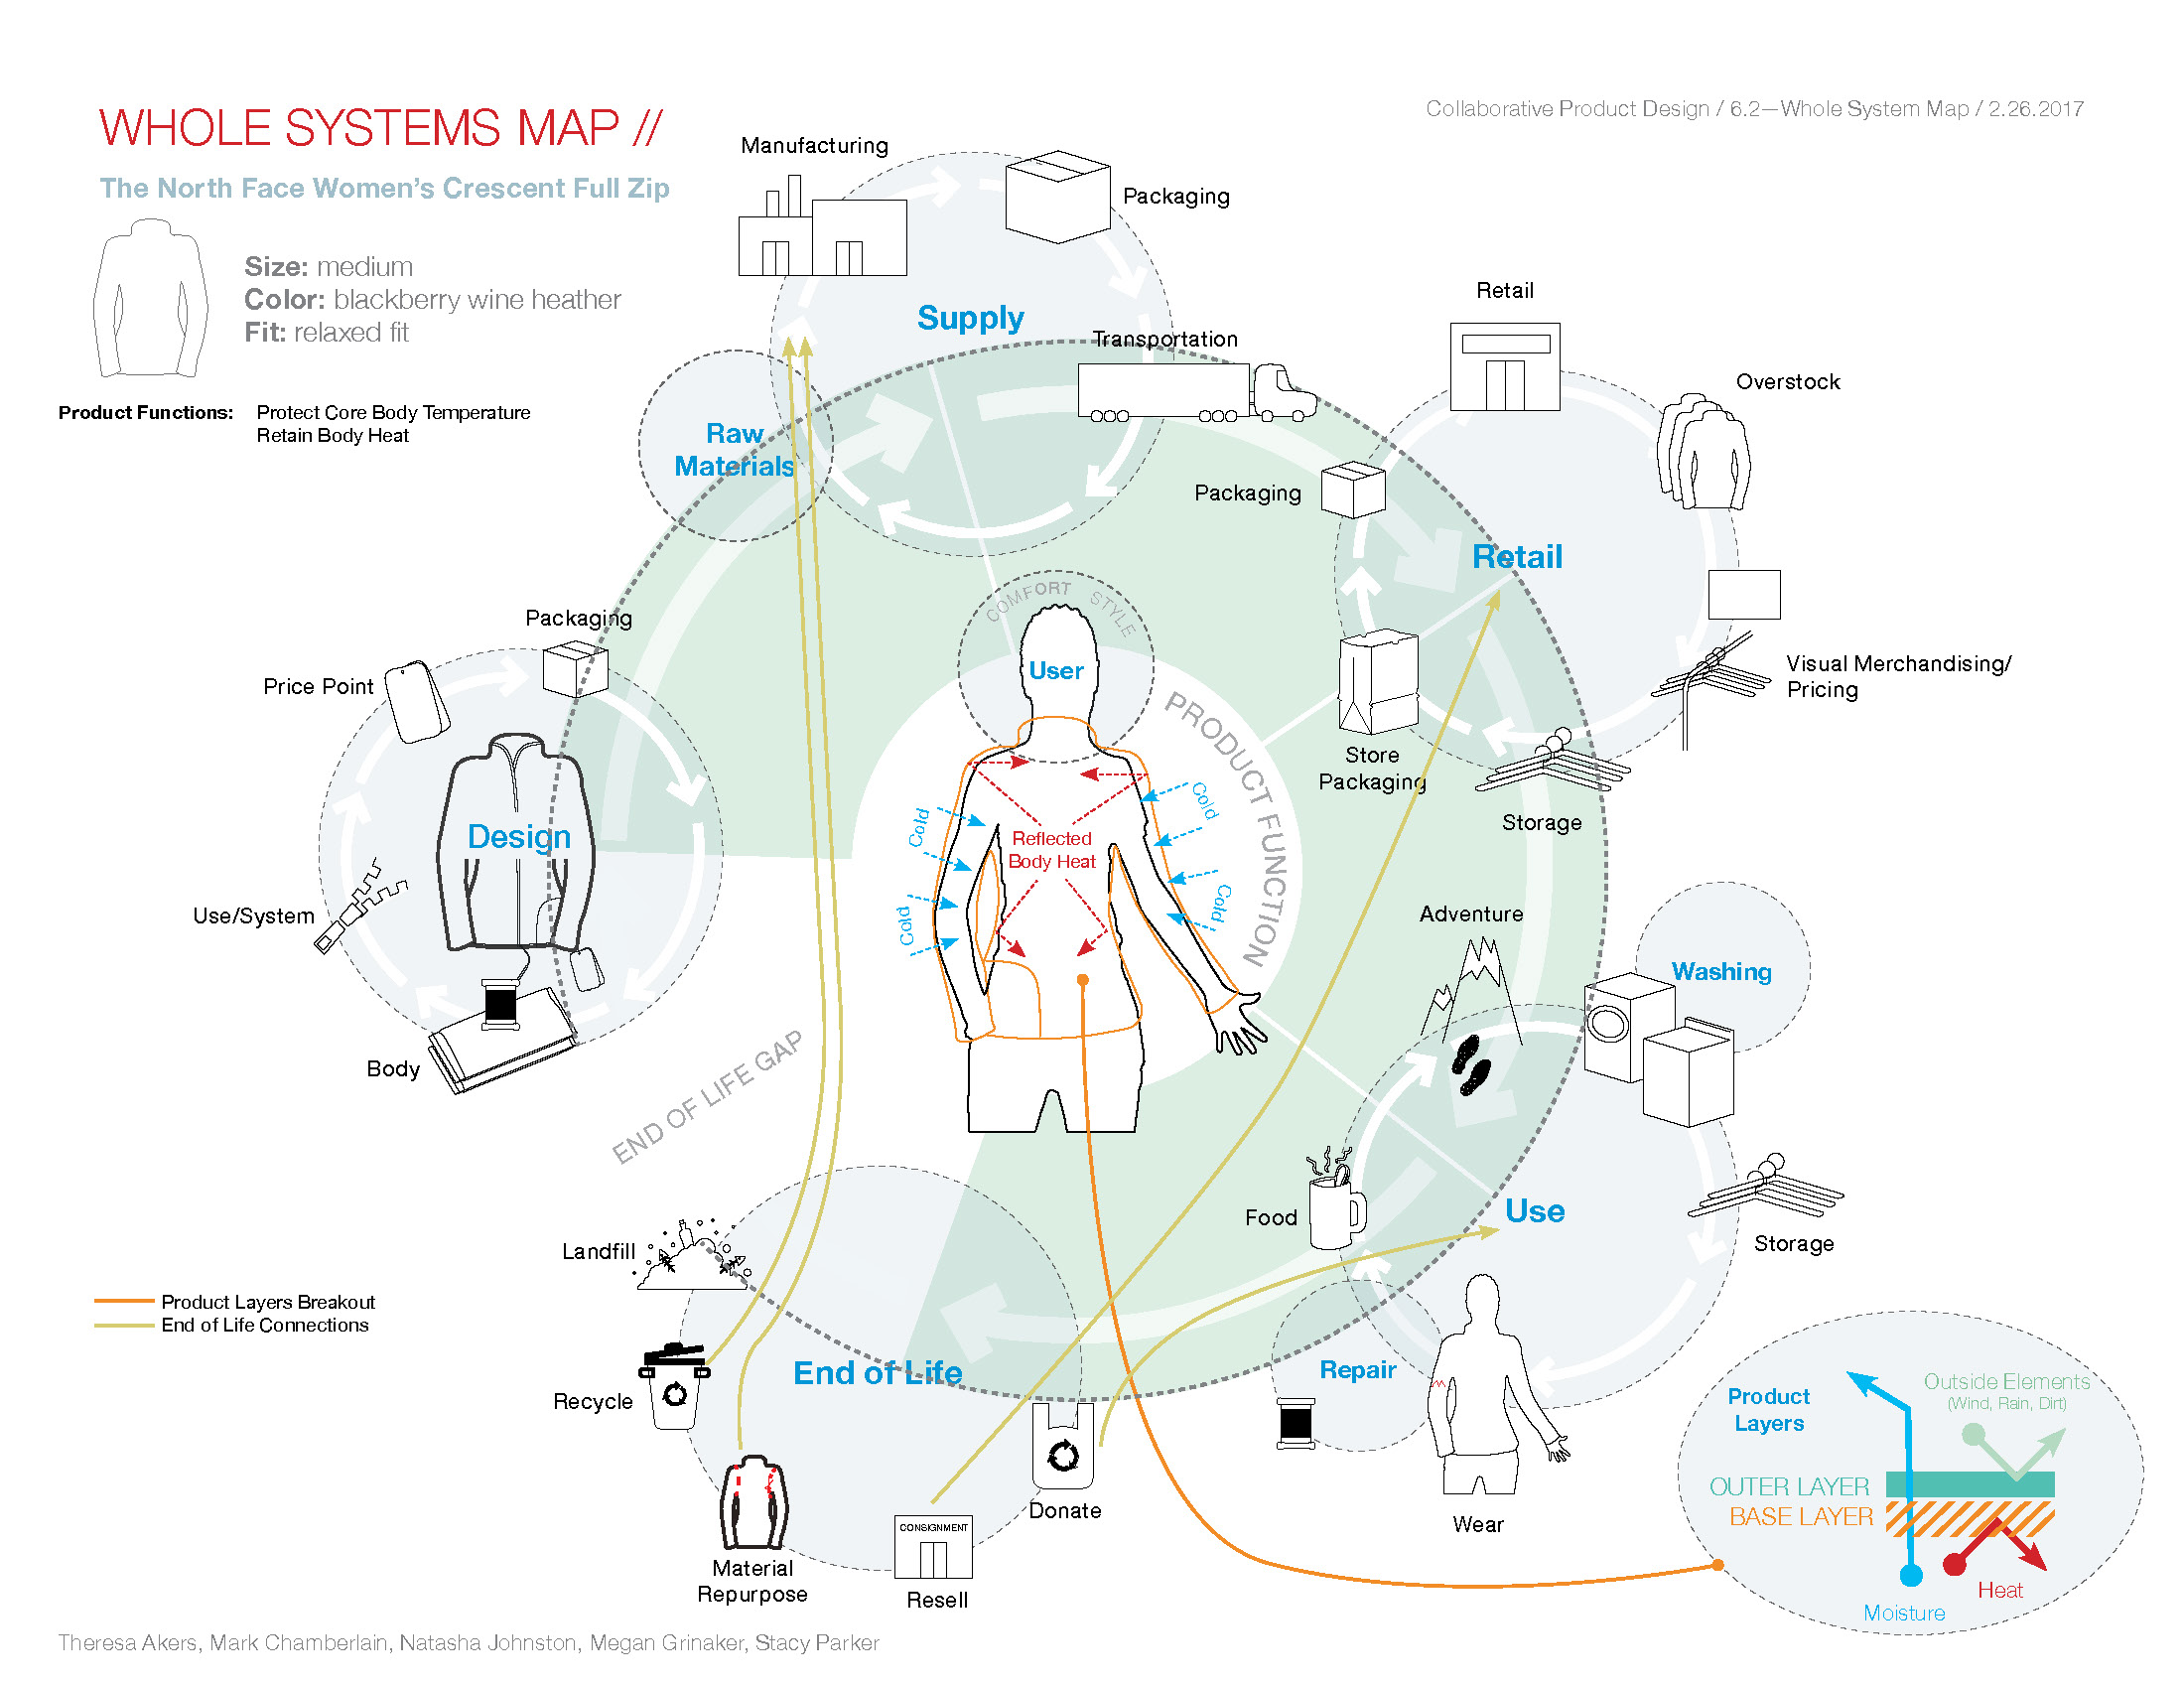 The North Face: Whole Systems Map - Collaborative Product Design | Spring 2017The North Face Women's Crescent Pull Zip life cycle research. My component was creating the wire frame illustrations, upon which my colleagues built the extents of the rest of the document. Colleagues are cited here, within the document.